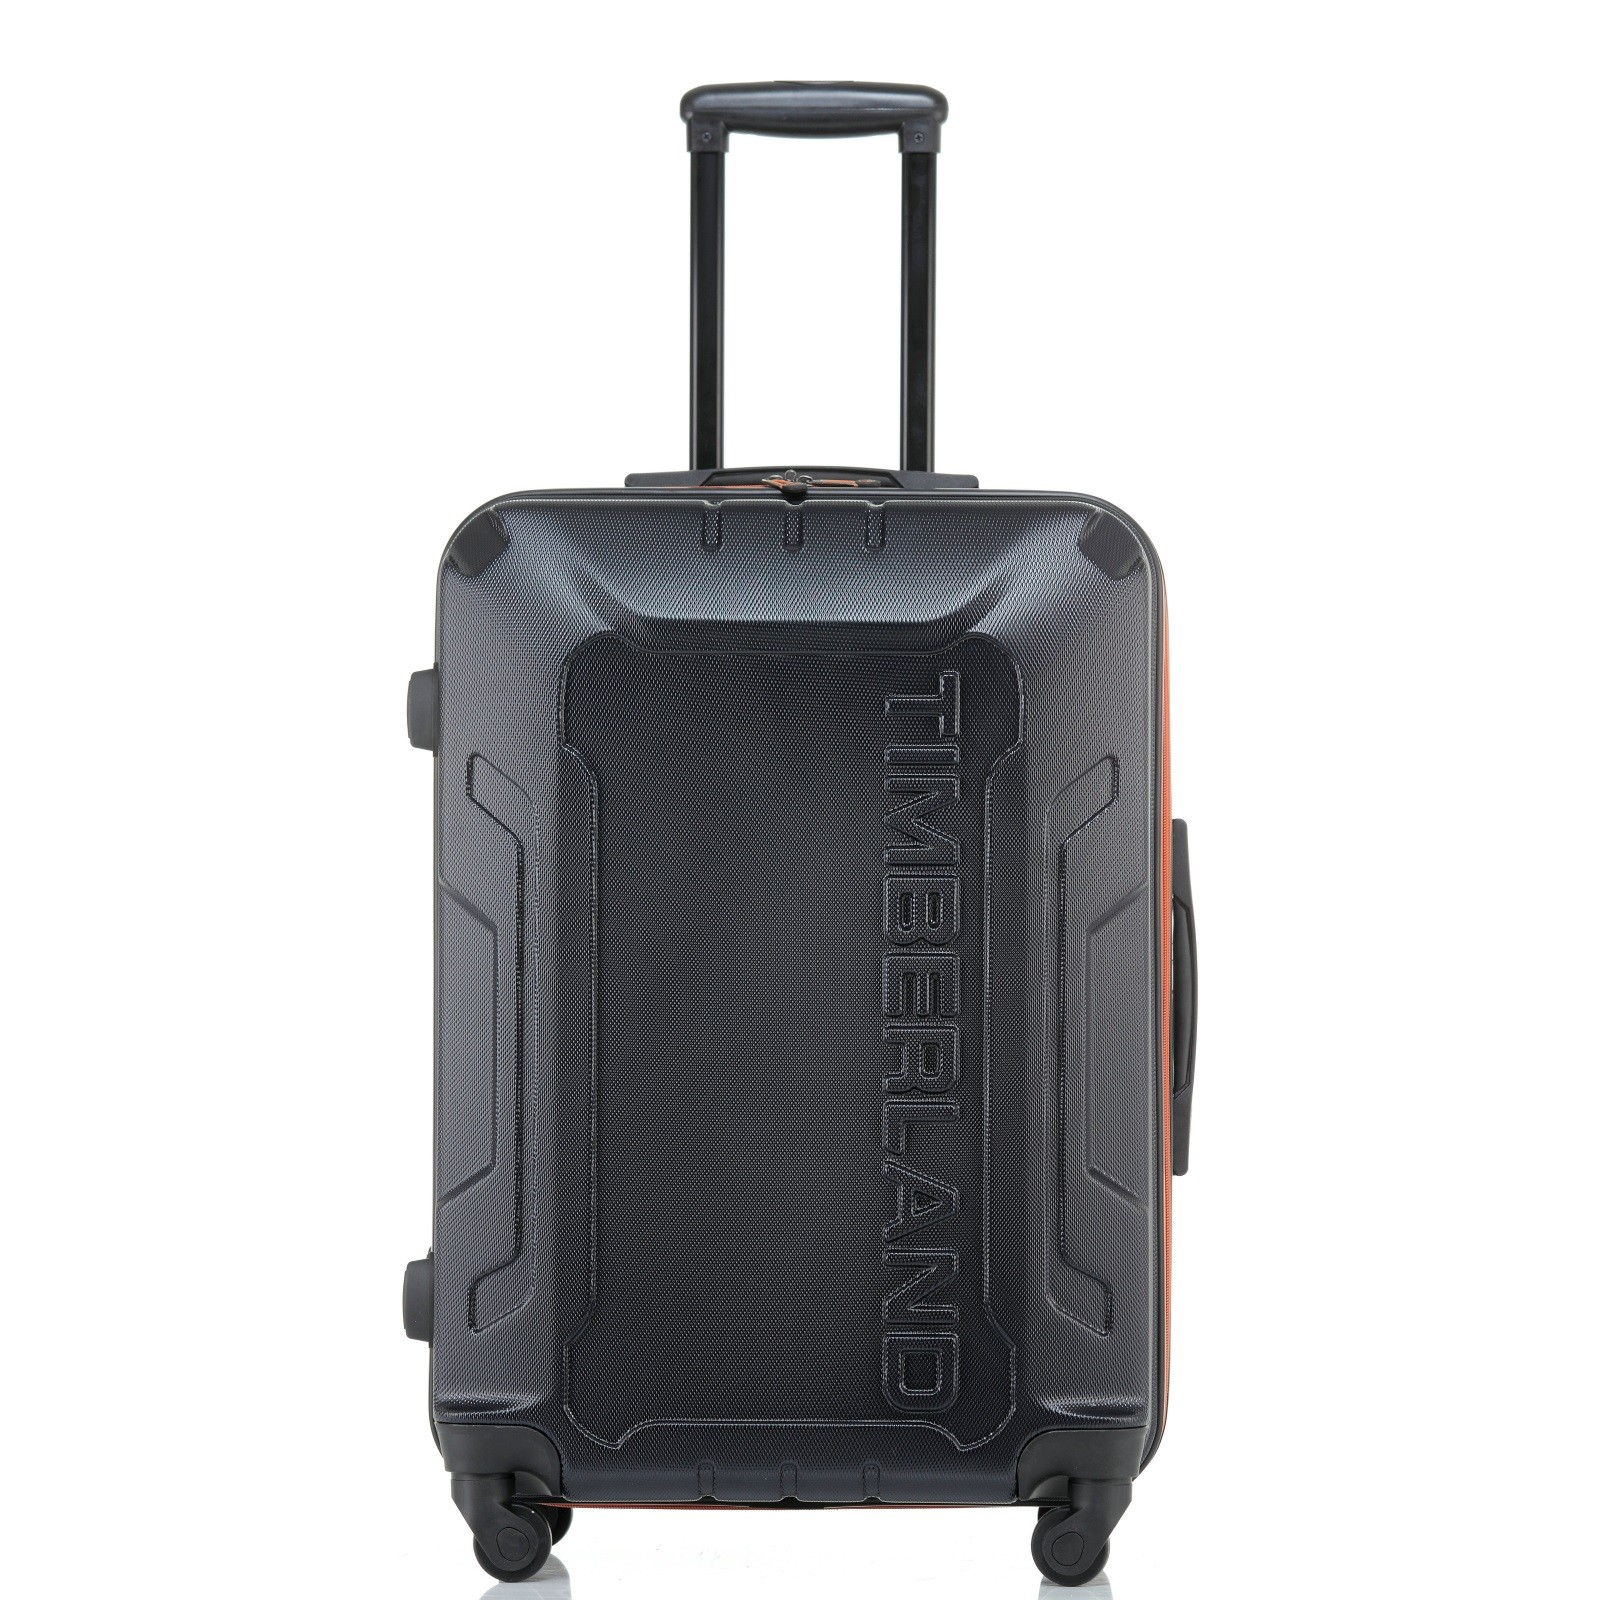 timberland case Timberland fort stark carry-on hardside expandable spinner luggage sale   21'' case: 205''h x 1475''w x 925''d 25'' overall: 265''h x 19''w x 11''d 82 lbs.